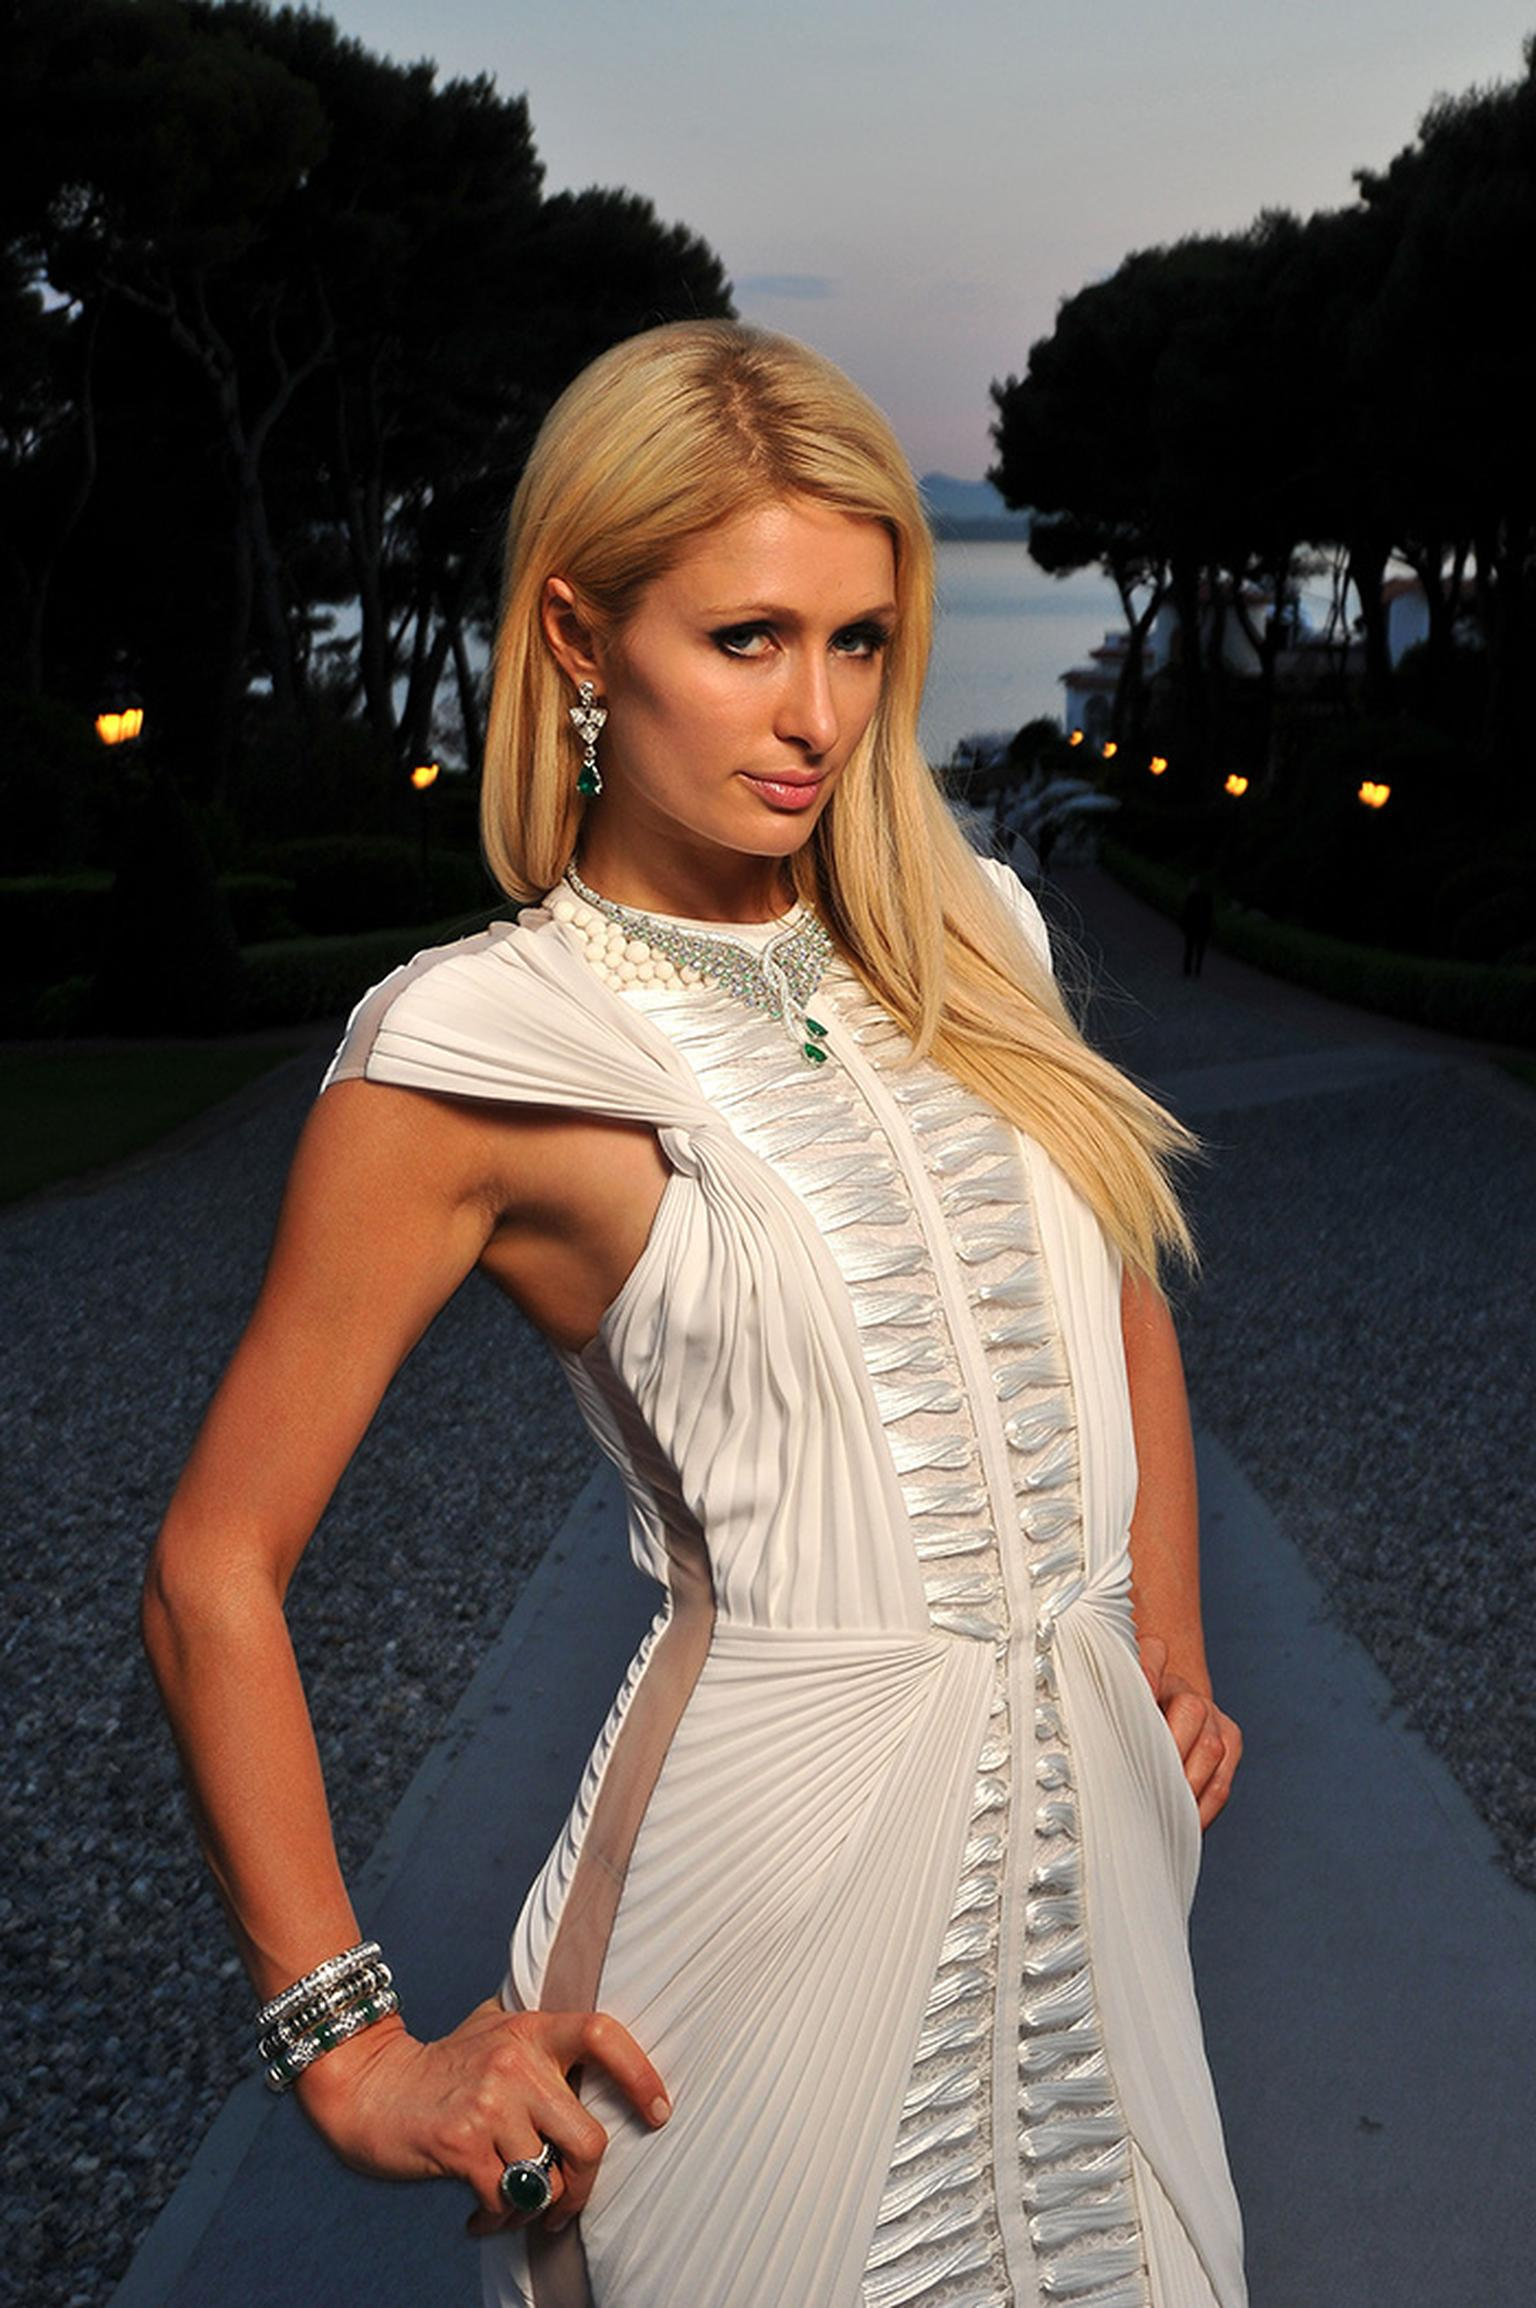 Paris-Hilton-wearing-Avakian.jpg